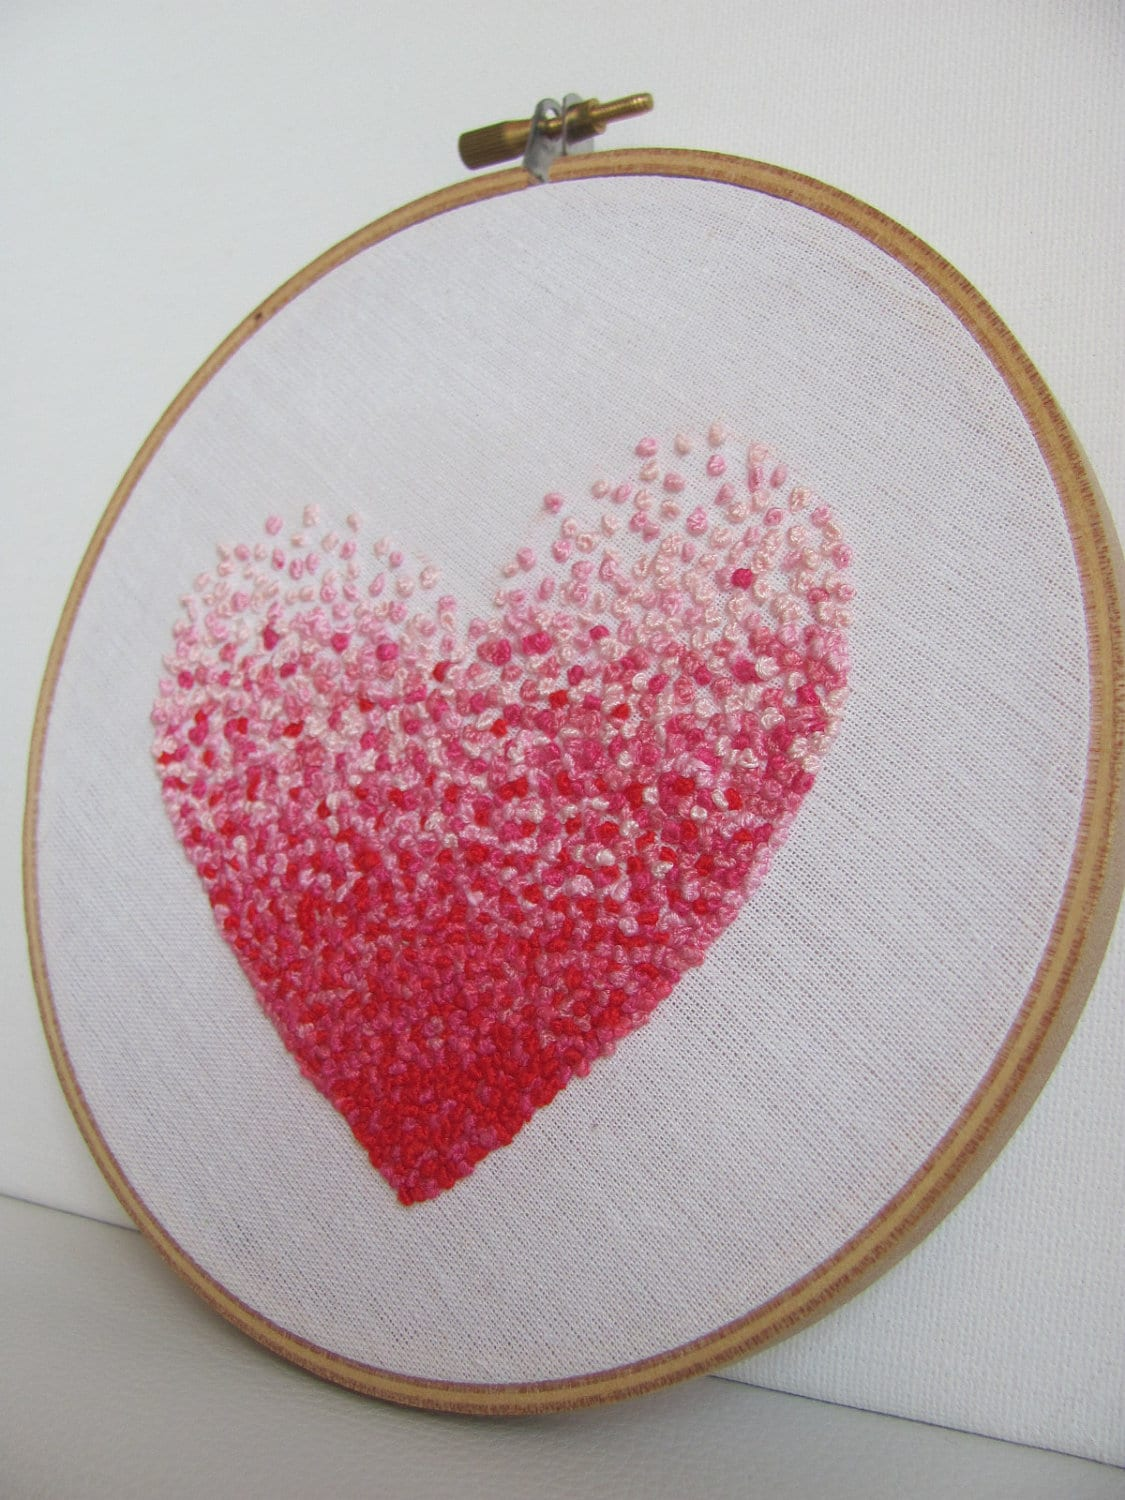 Embroidery french knot pink heart hoop art for Embroidery office design version 9